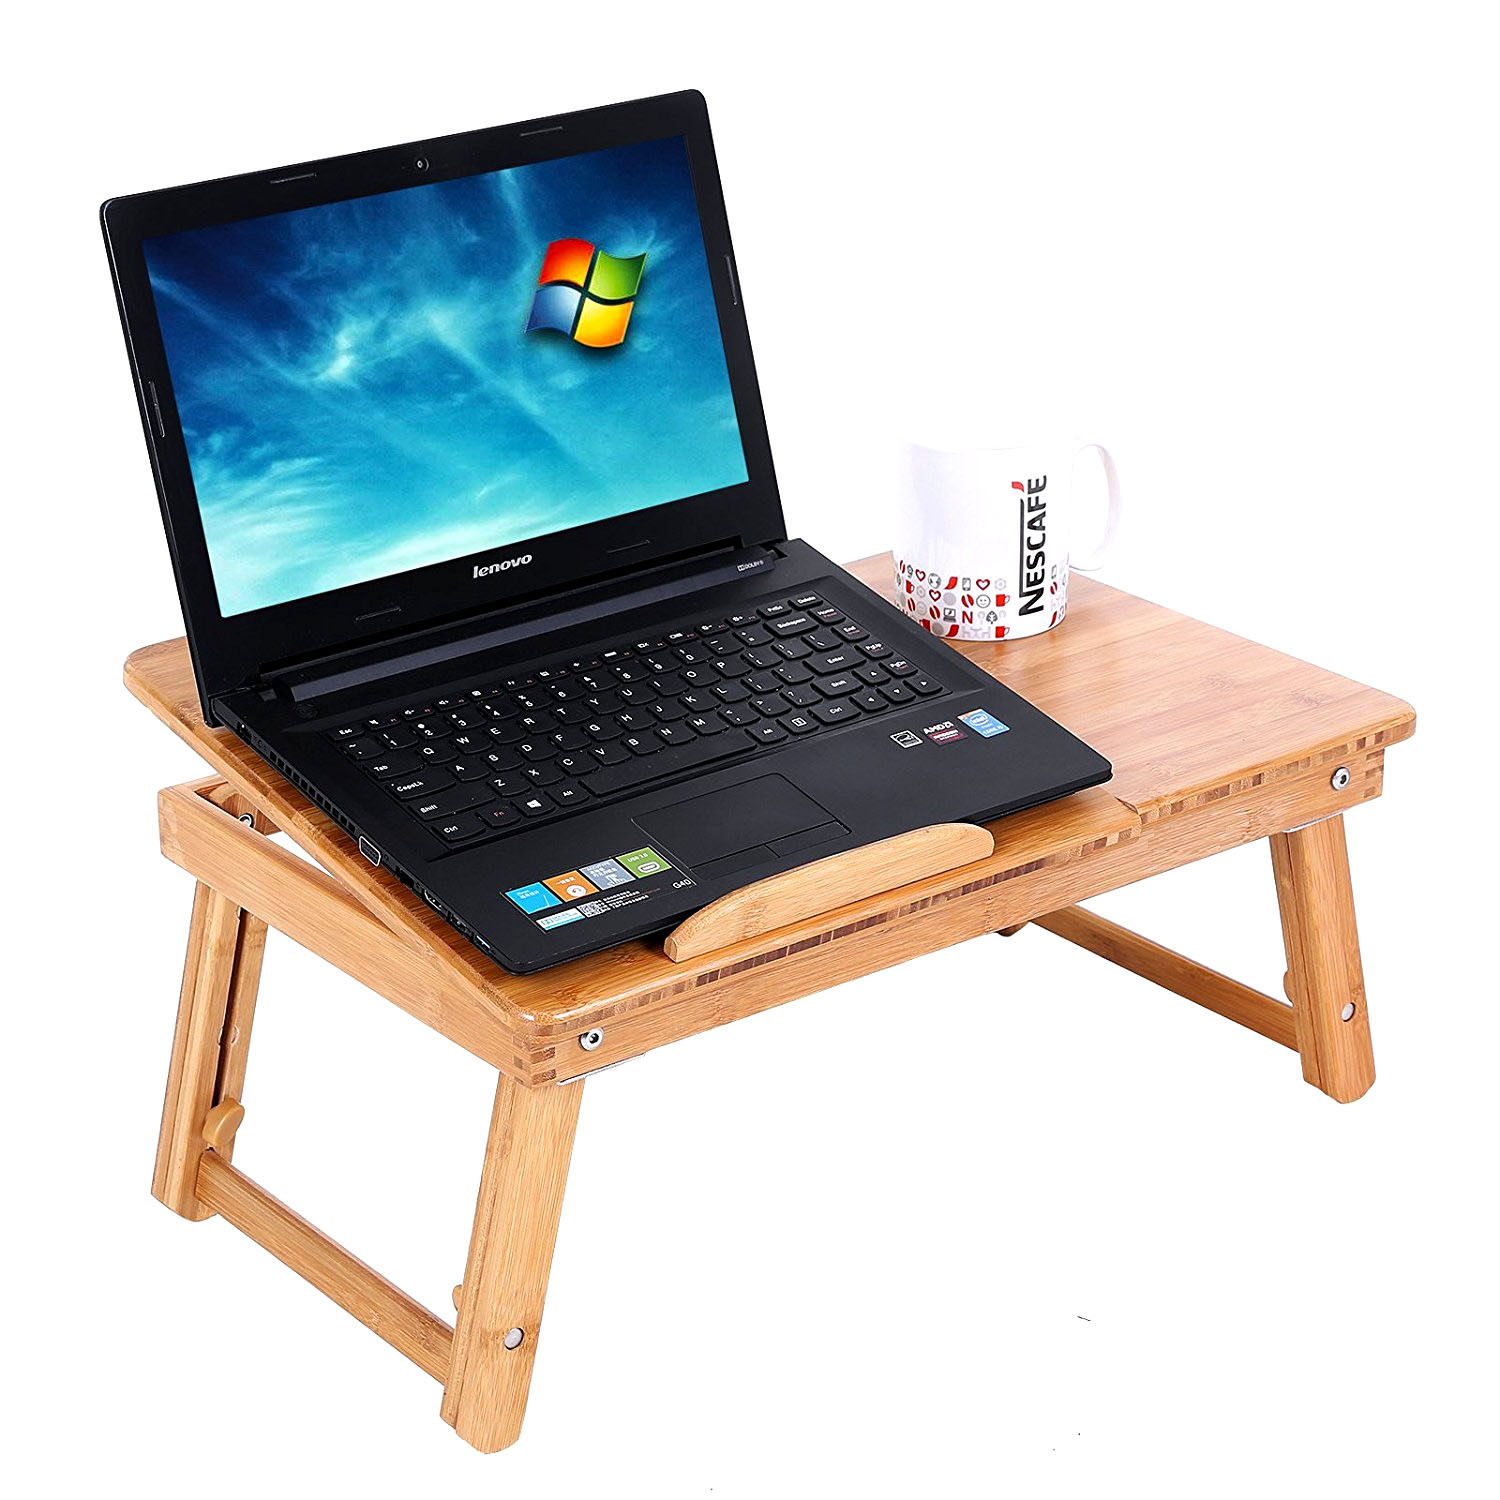 ohuhu tray portable vented book aluminum walmart folding desk adjustable ip notebook laptop com table